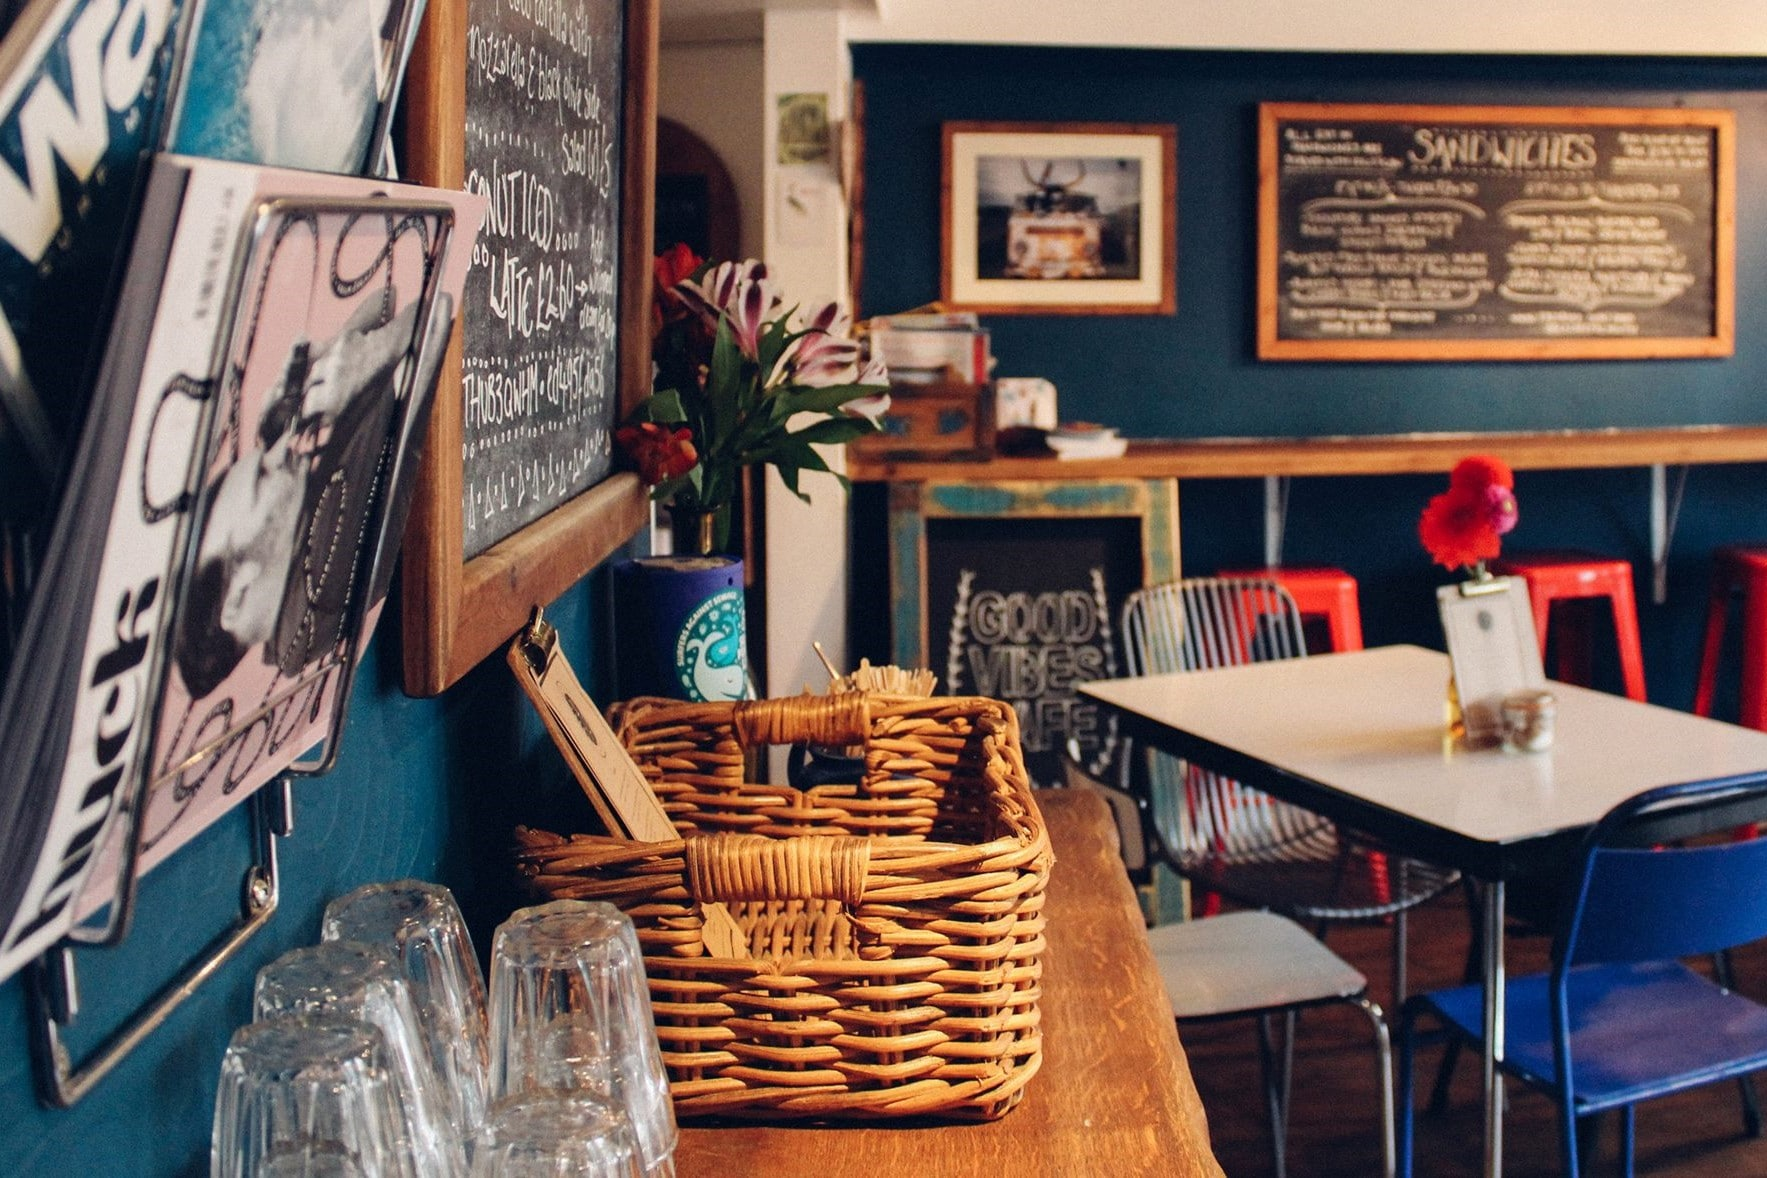 interior-of-cute-cafe-with-blue-teal-walls-good-vibes-cafe-places-to-eat-in-falmouth